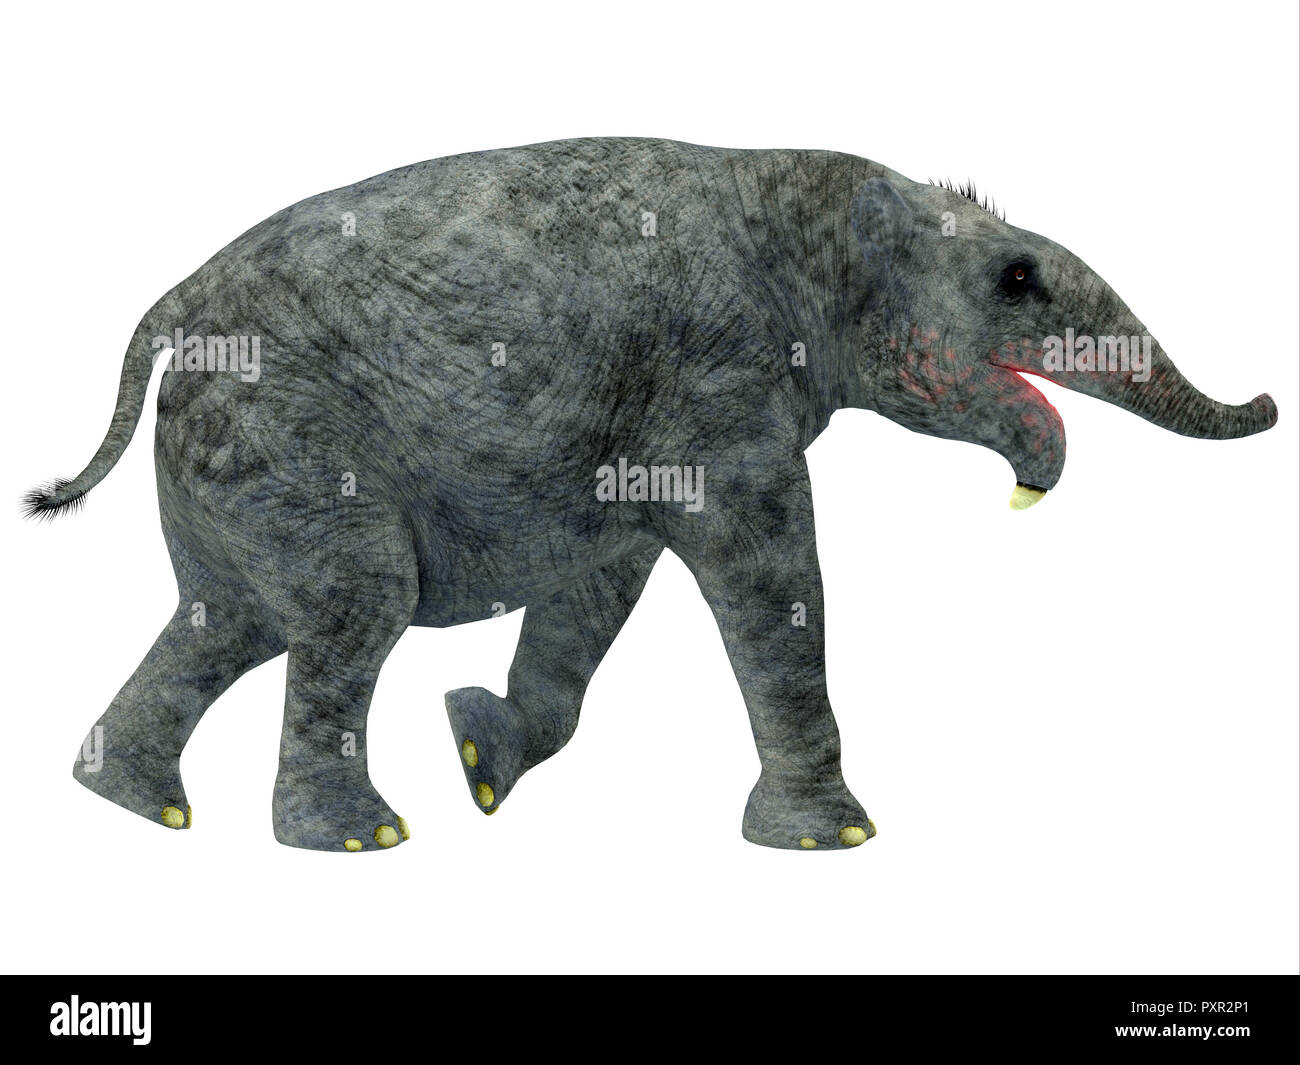 Deinotherium Young Mammal - Deinotherium was an elephant mammal that lived in Asia, Africa and Europe during the Miocene and Pleistocene Period. - Stock Image